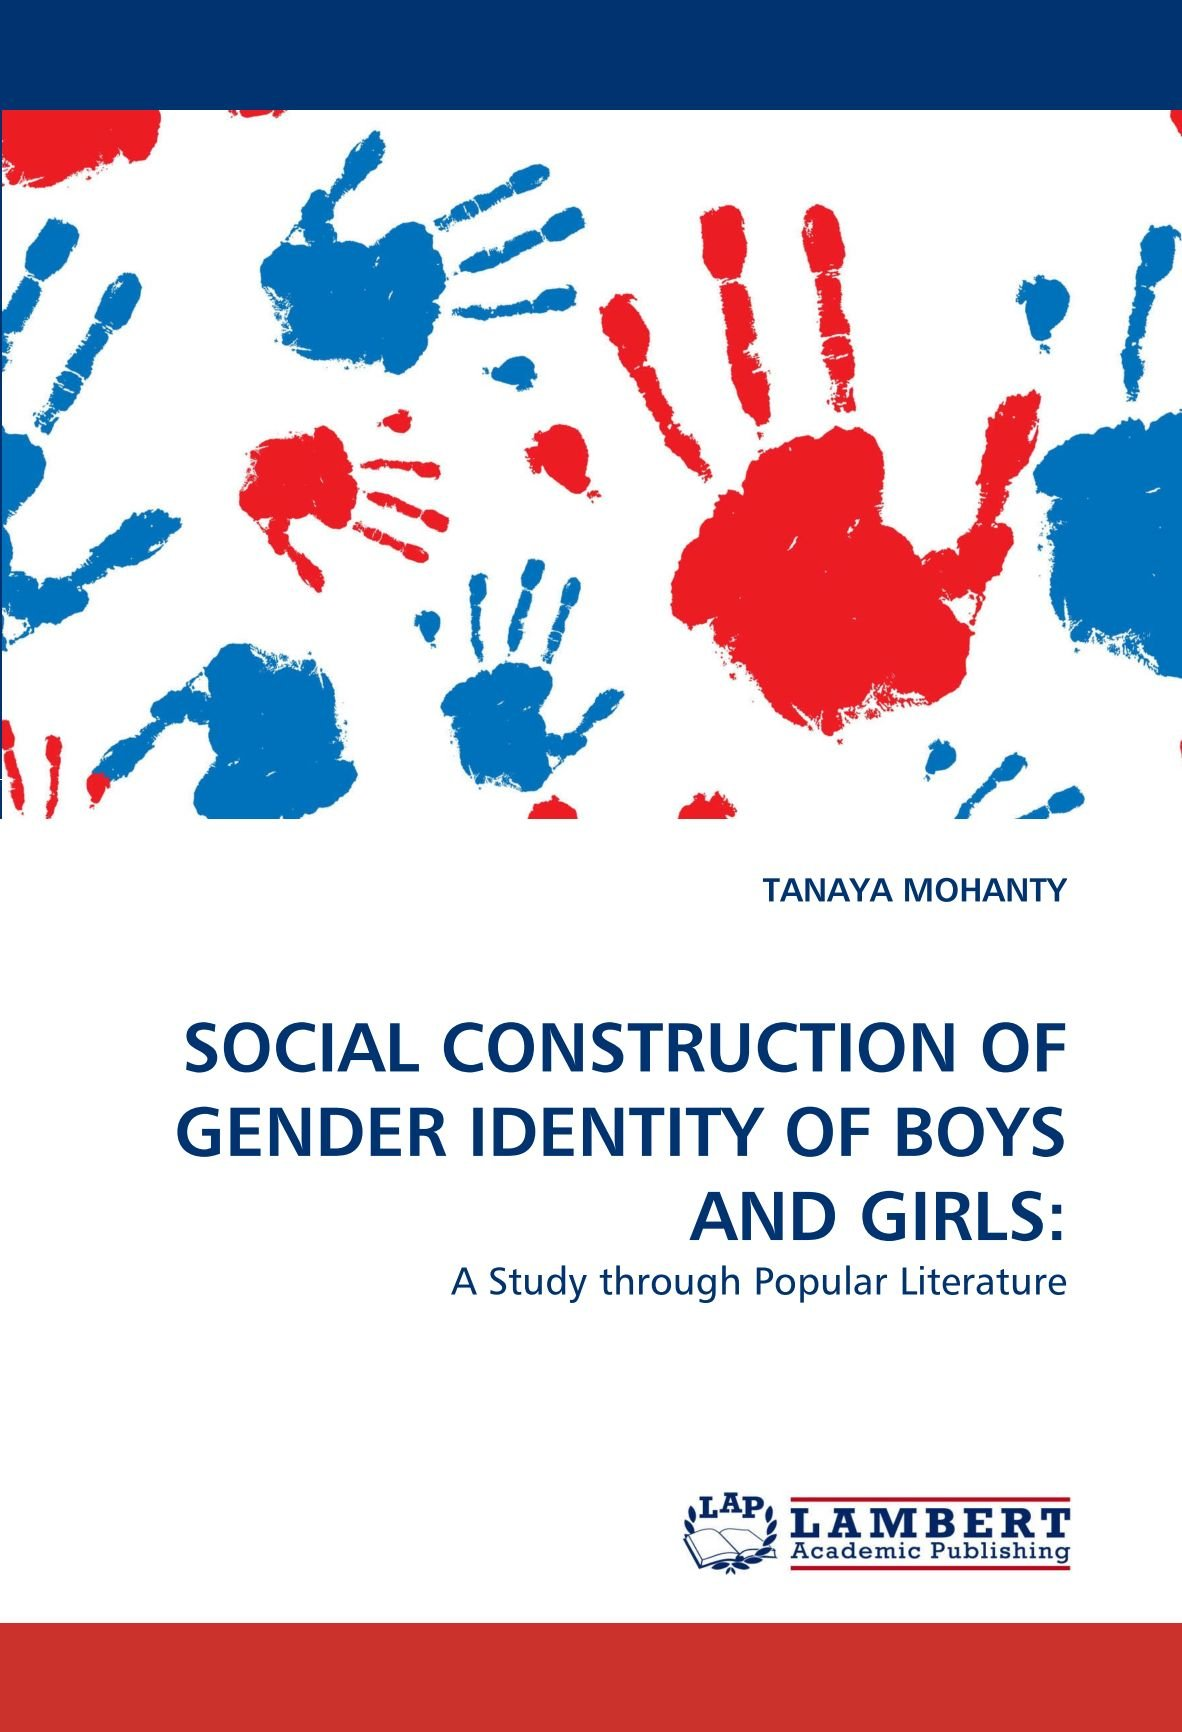 Amazon.com: SOCIAL CONSTRUCTION OF GENDER IDENTITY OF BOYS AND GIRLS ...